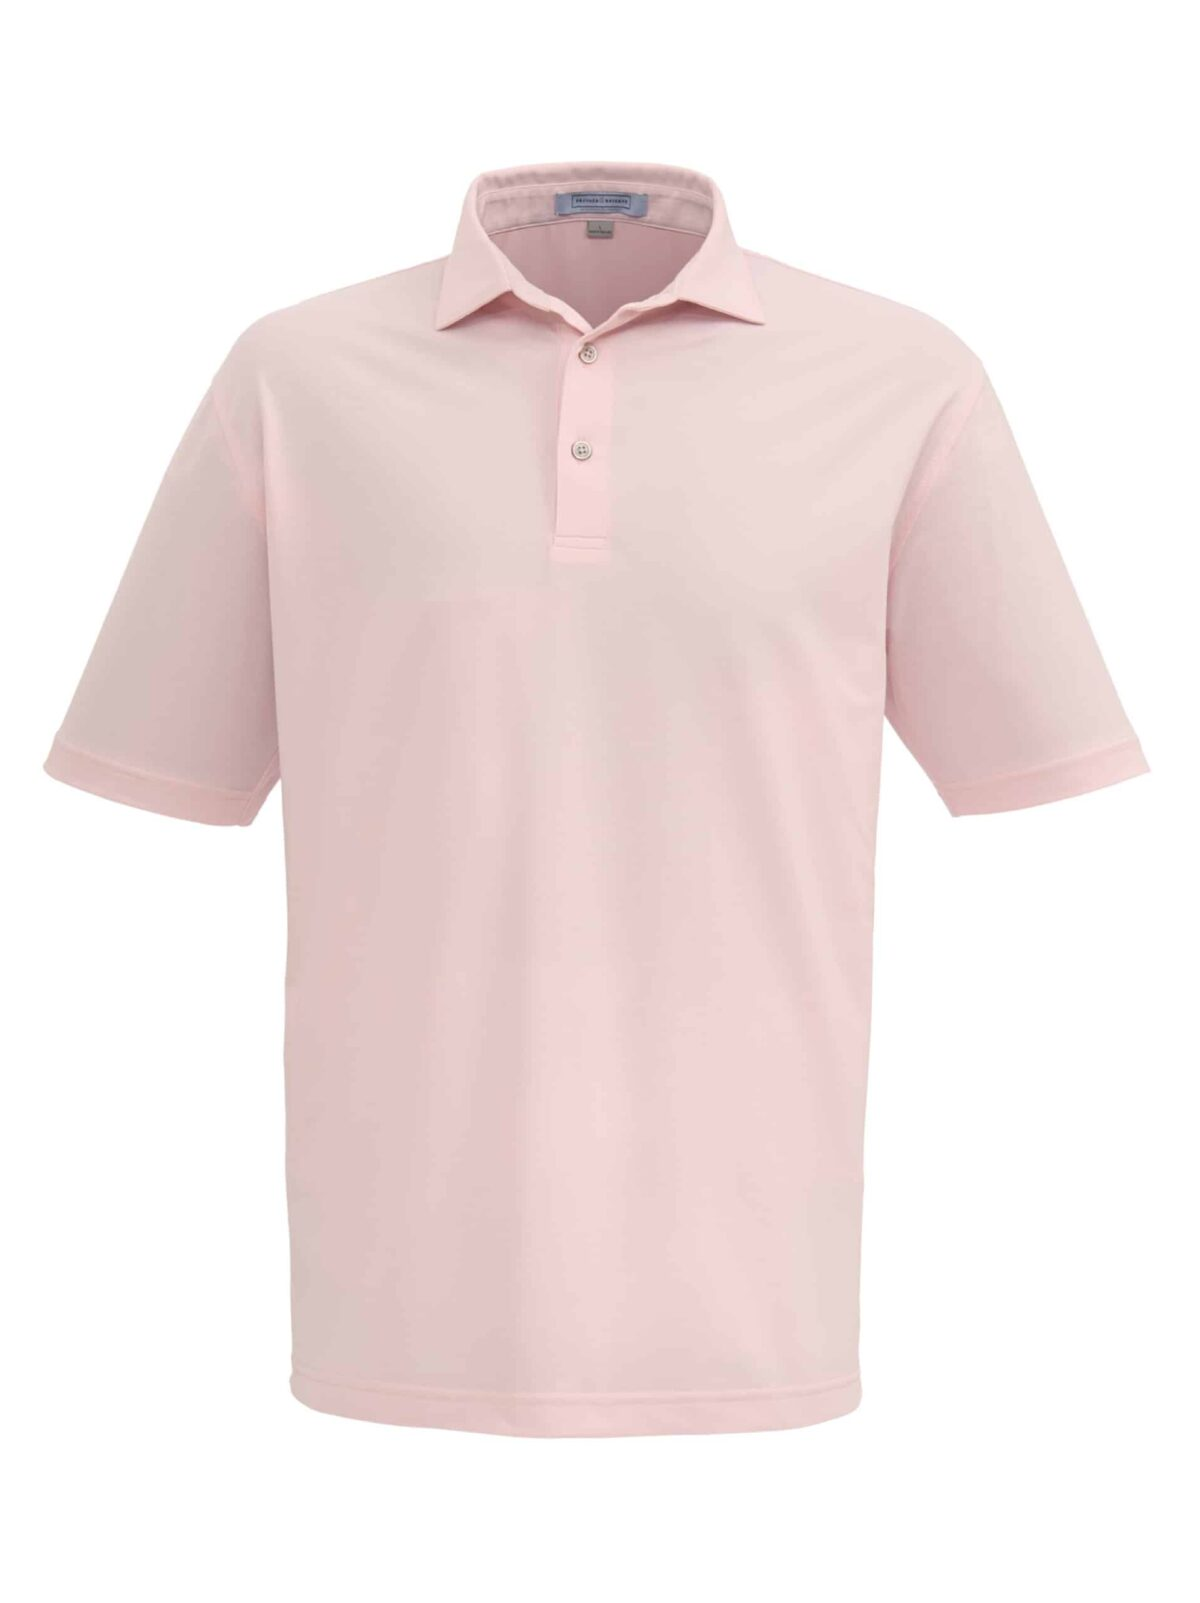 solid pink mens golf polo shirt